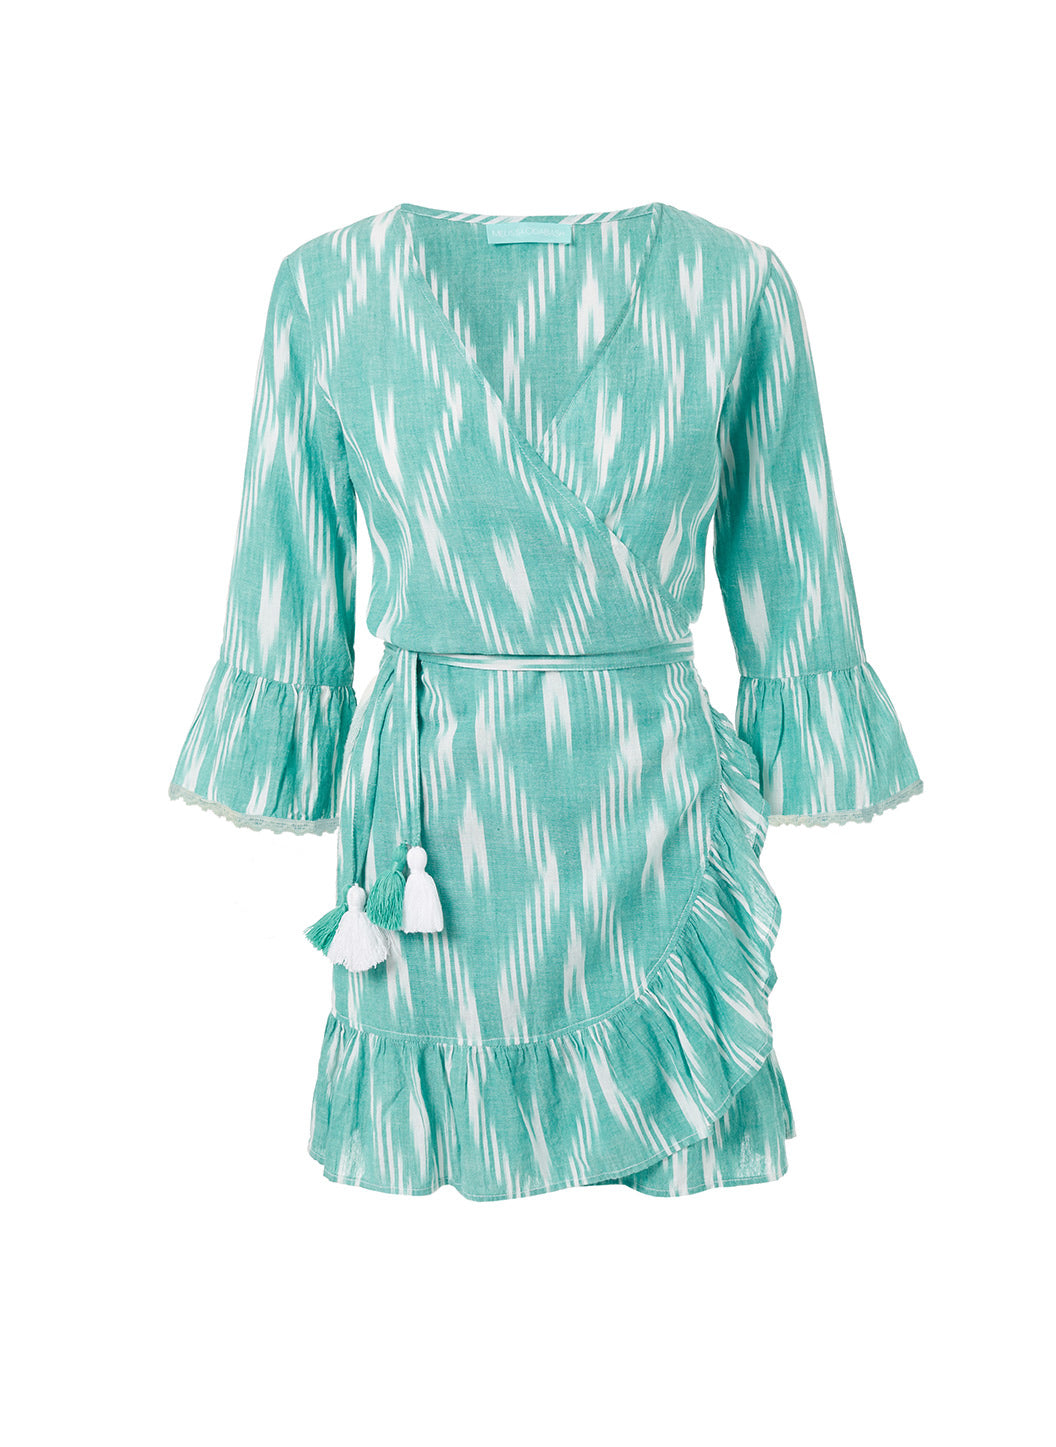 Freya Greenikat Short Belted Wrap Dress - Melissa Odabash Dresses & Kaftans